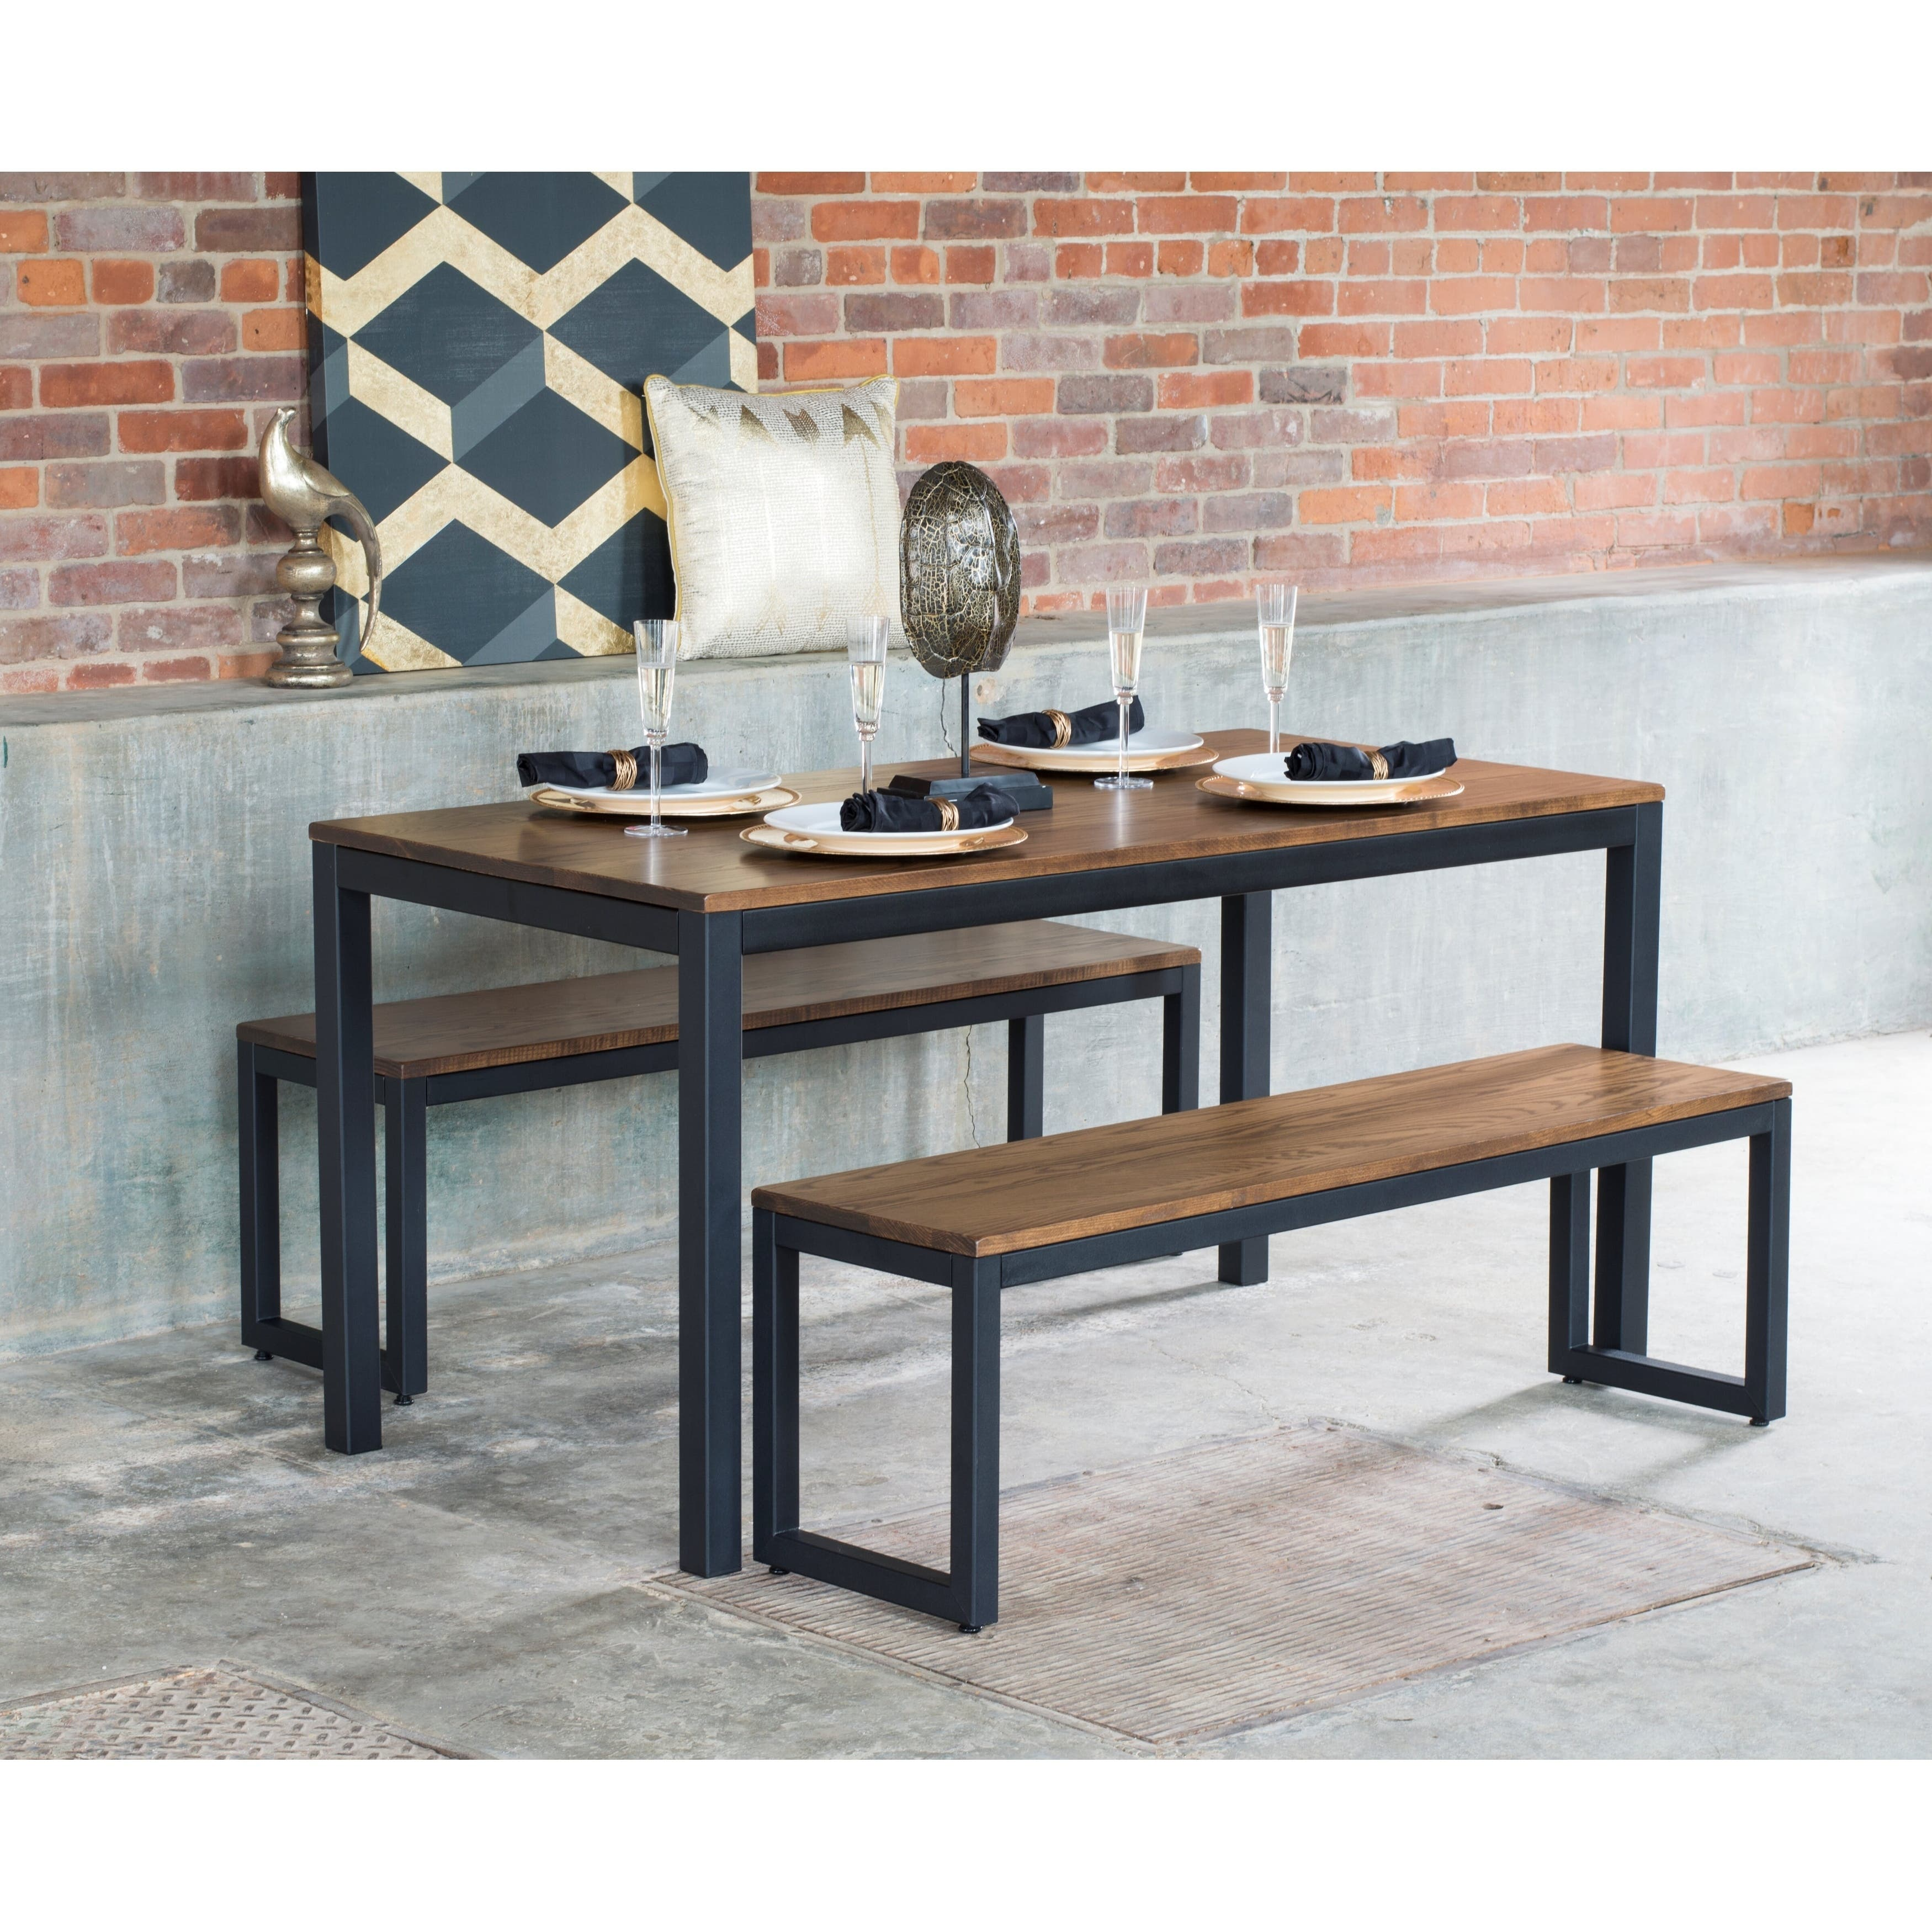 Buy Settees Online: Buy Benches & Settees Online At Overstock